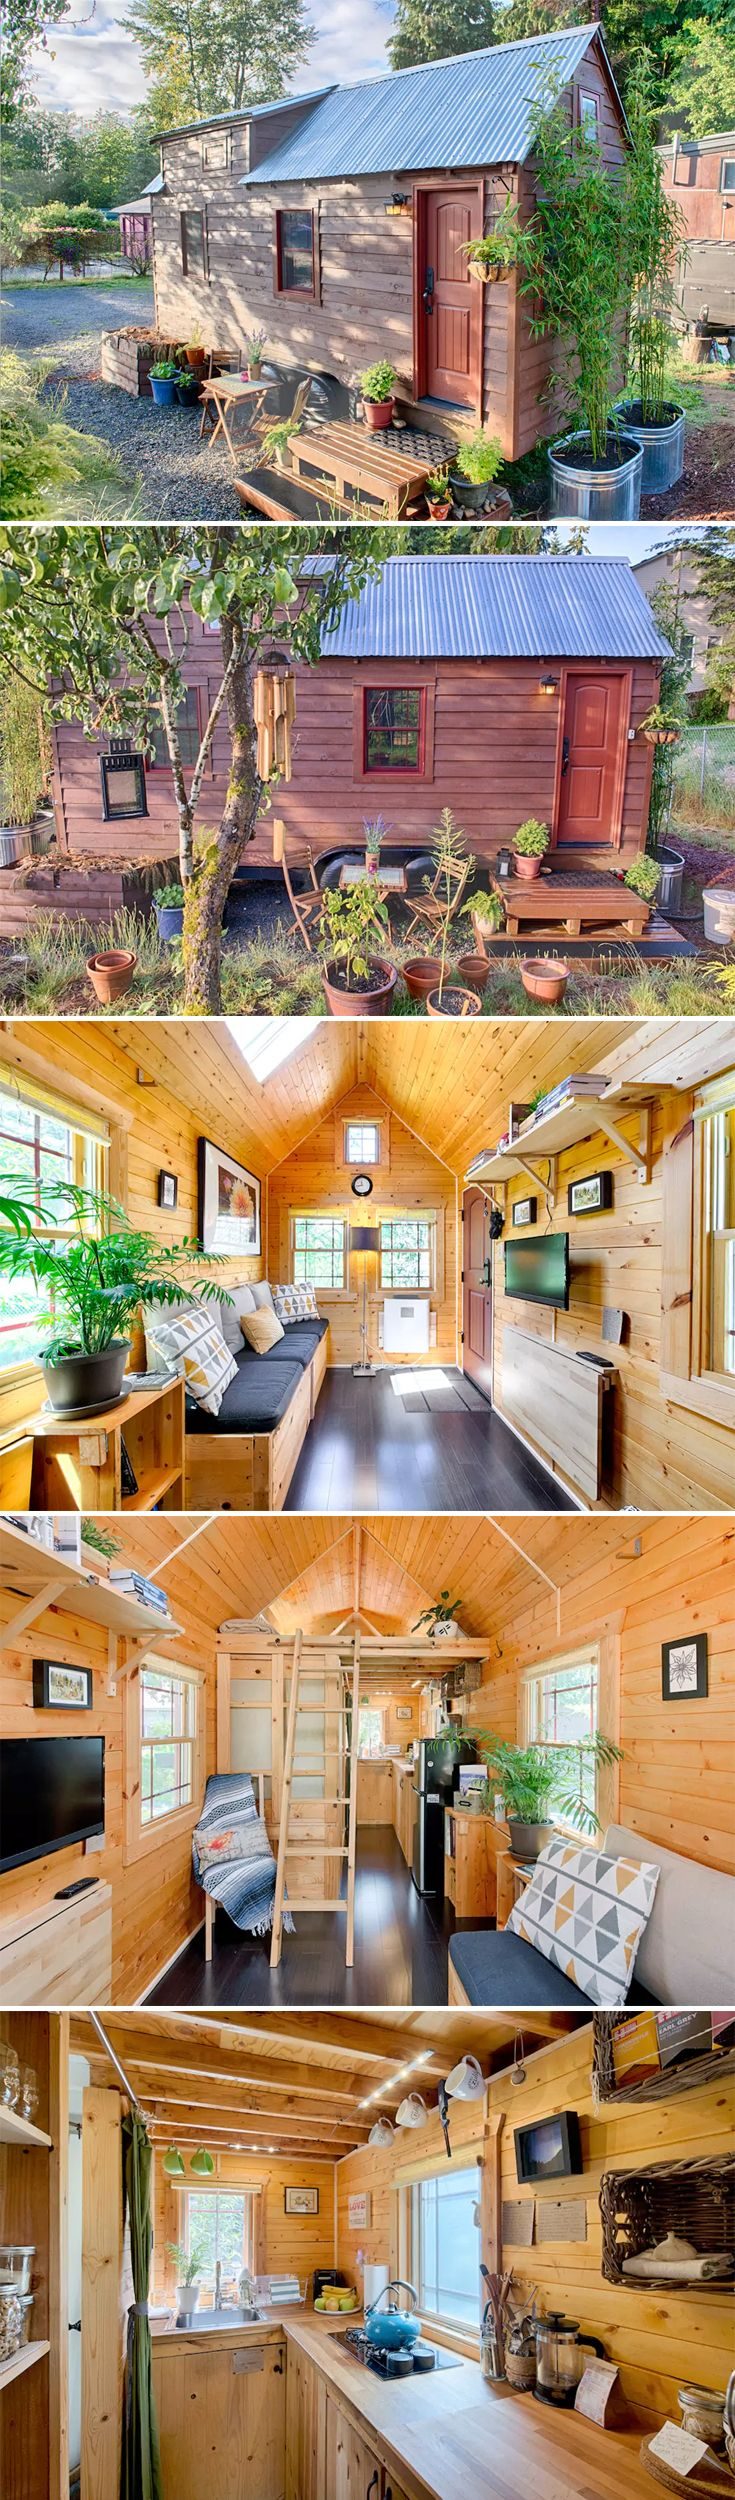 Superior The Tacks Built This Tiny House In Just Seven Months And It Cost Under  $20,000 In